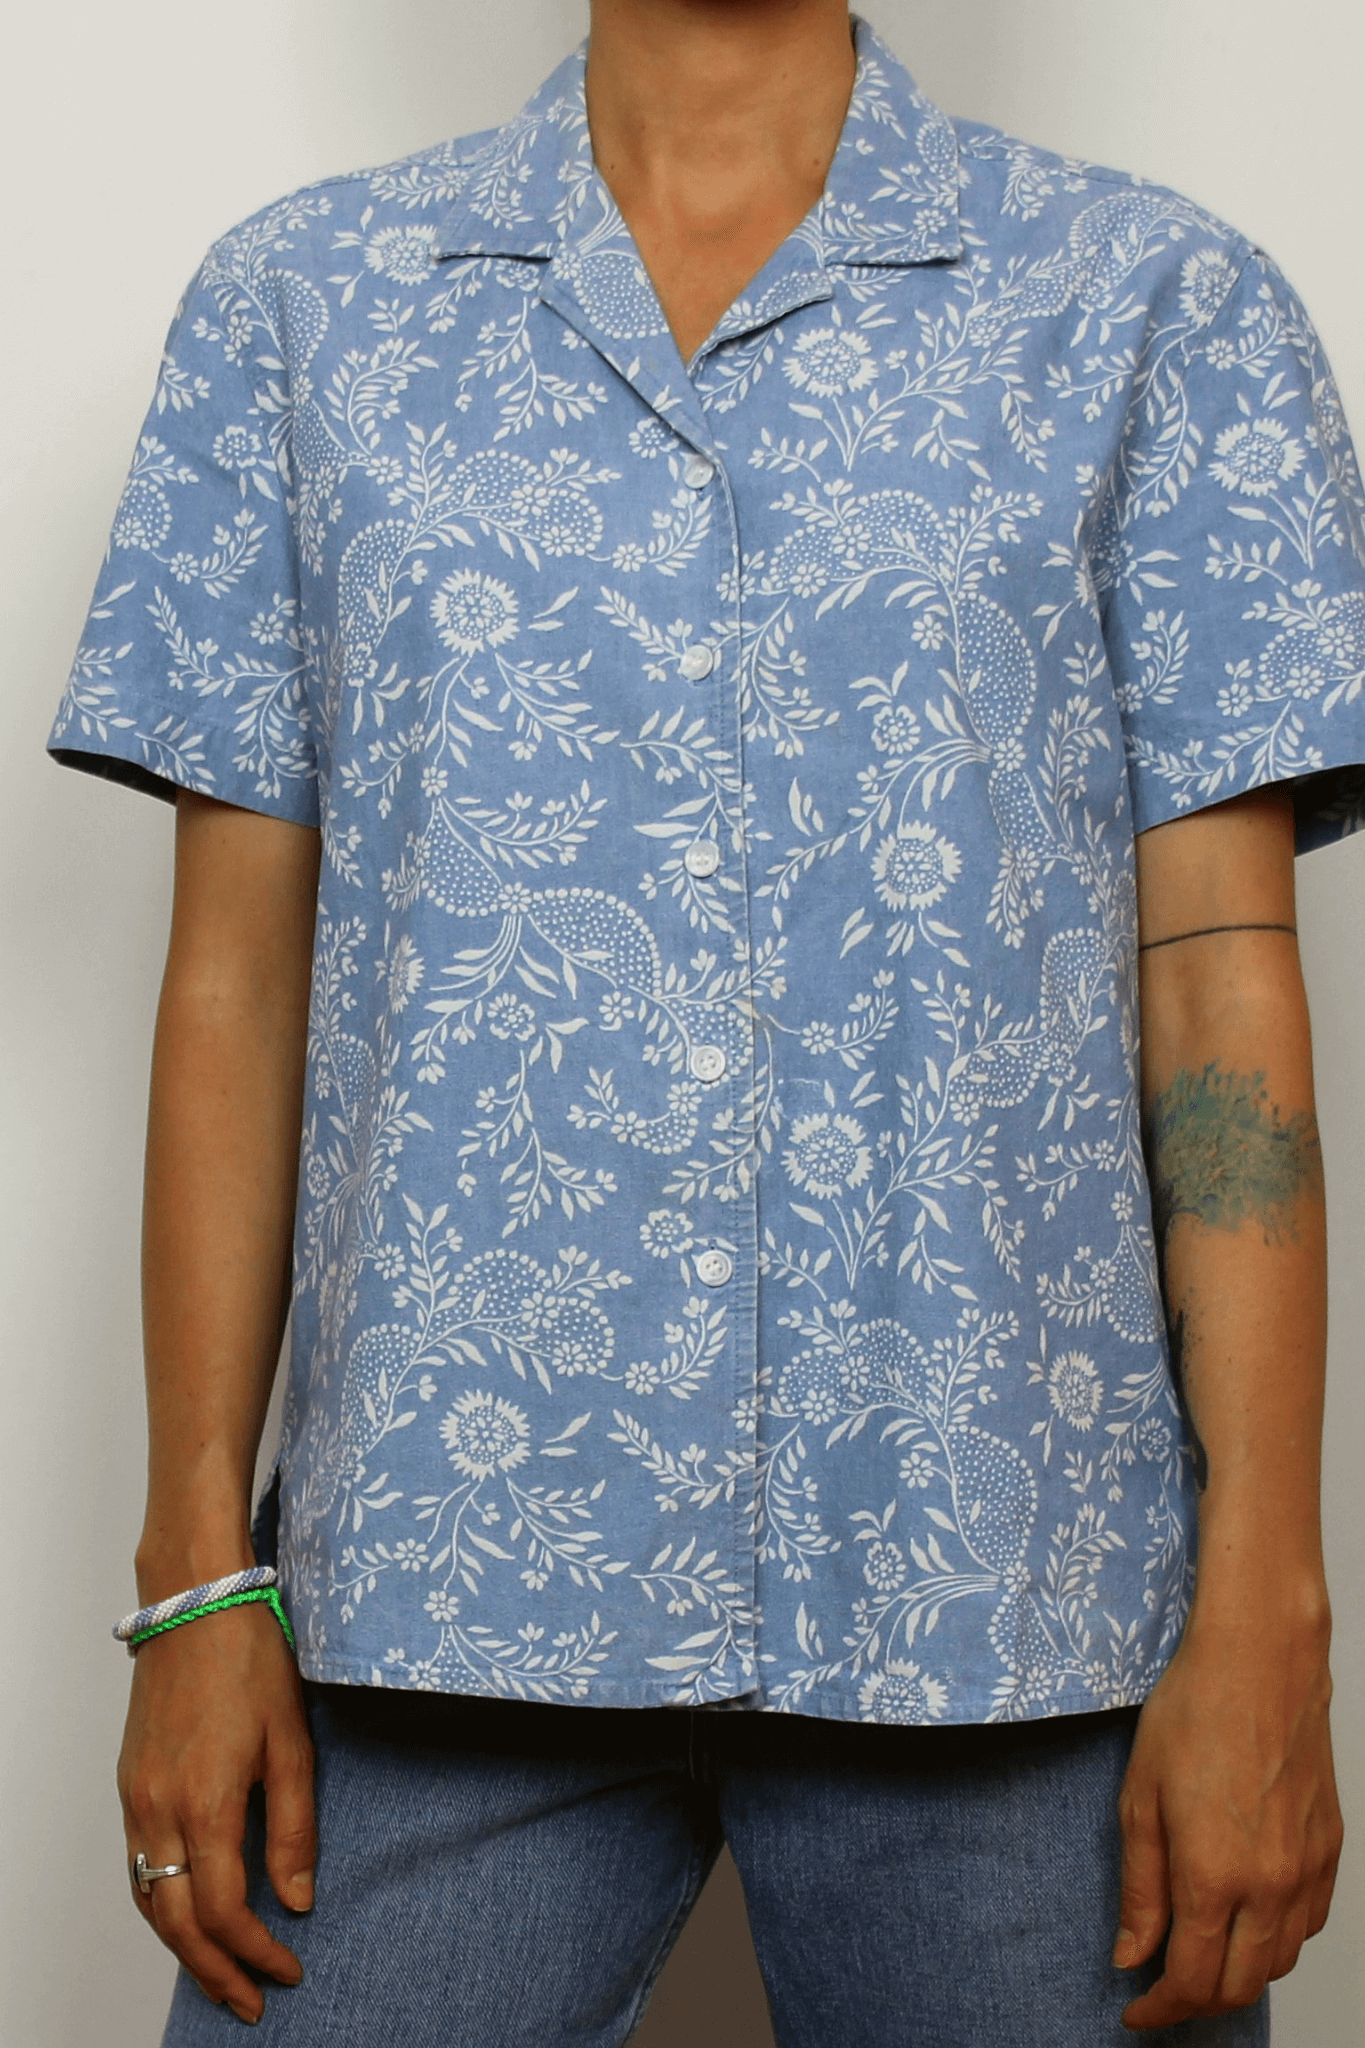 Jones New York 100% Cotton Floral Shirt